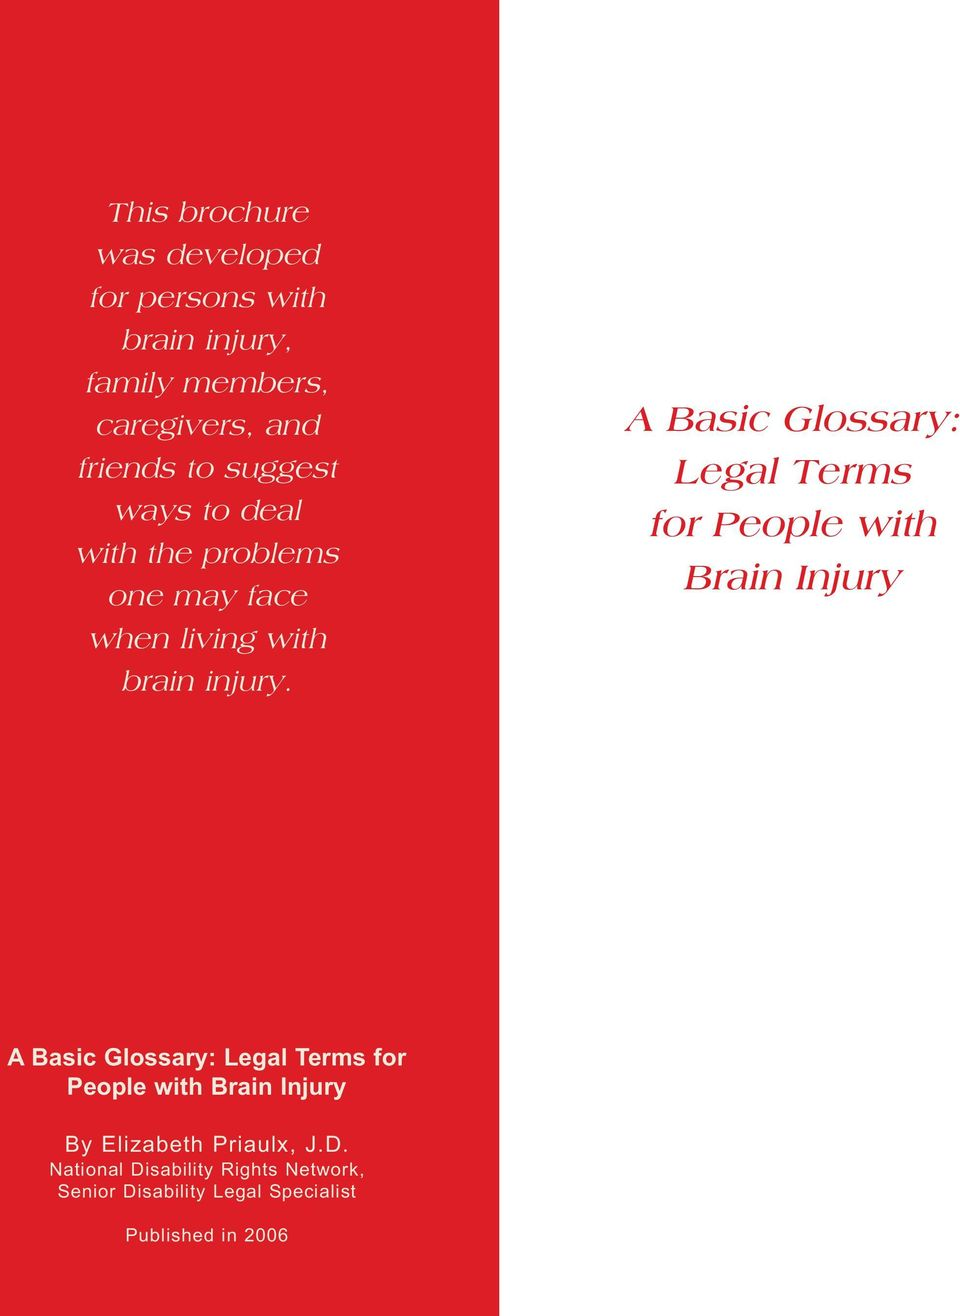 A Basic Glossary: Legal Terms for People with Brain Injury A Basic Glossary: Legal Terms for People with